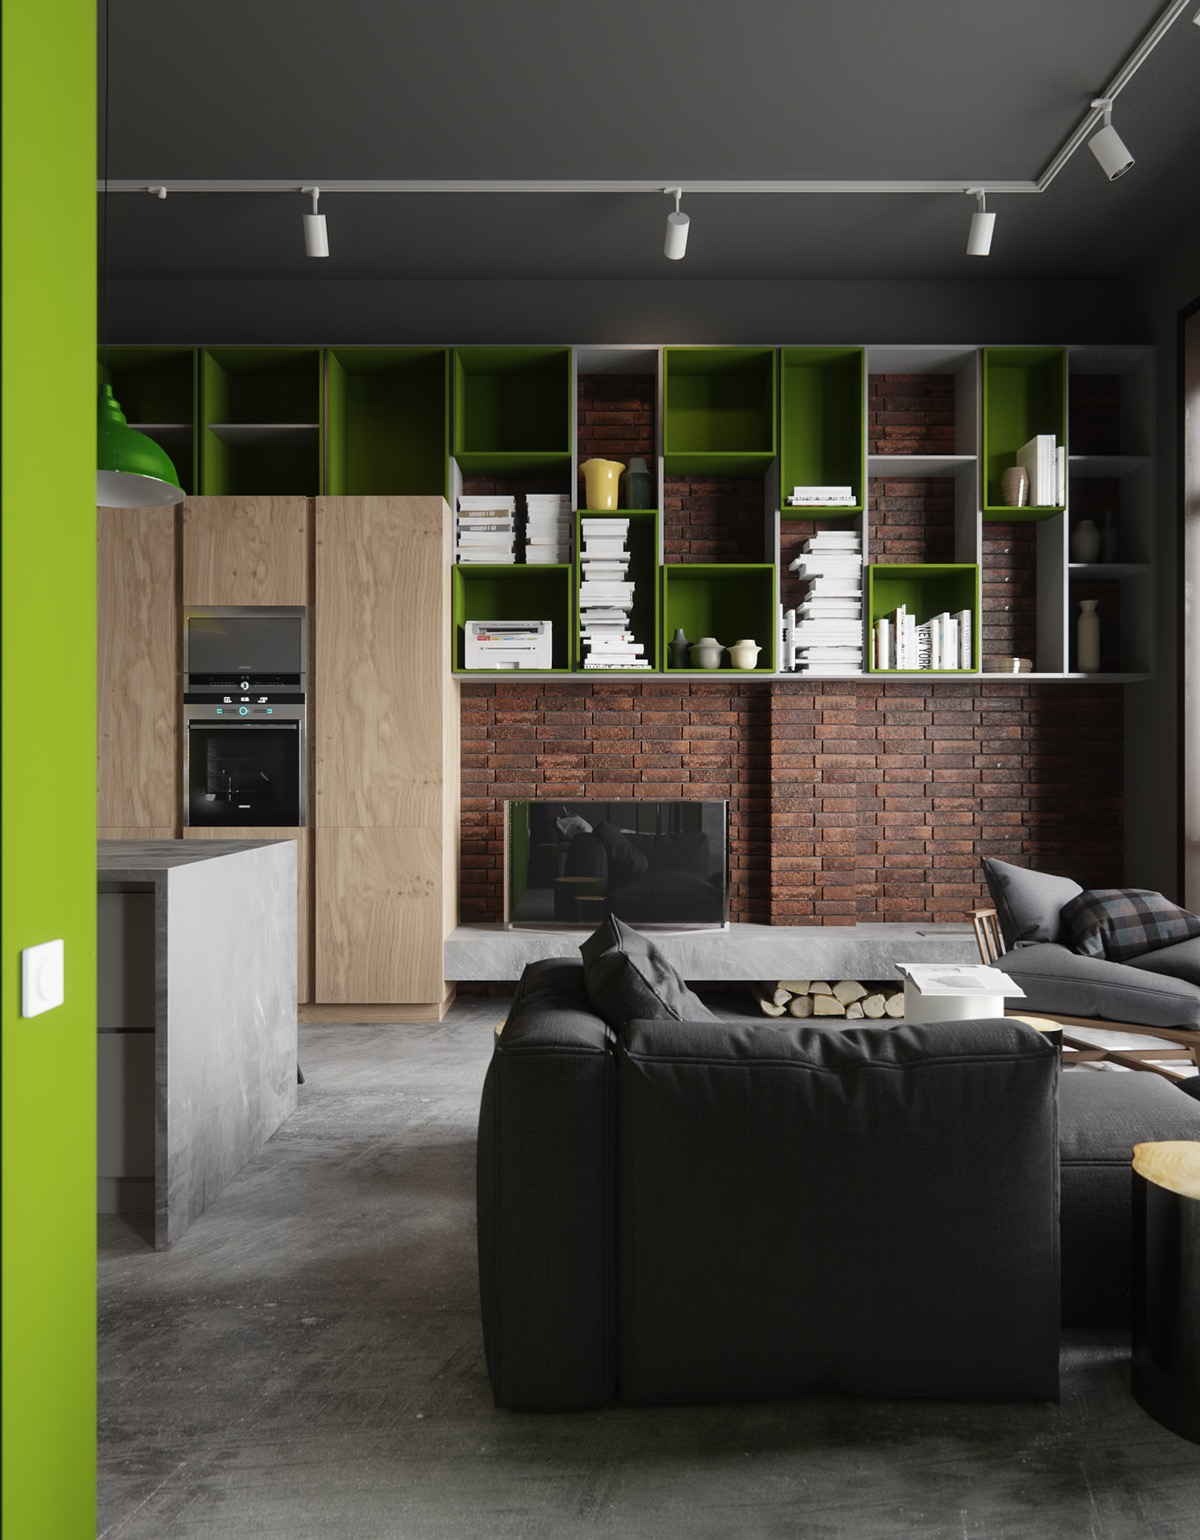 Modular storage units in green and white add fresh modern appeal to this industrial brick and concrete living space. The books are arranged without binding showing - a favorite staging technique for minimalistic spaces.